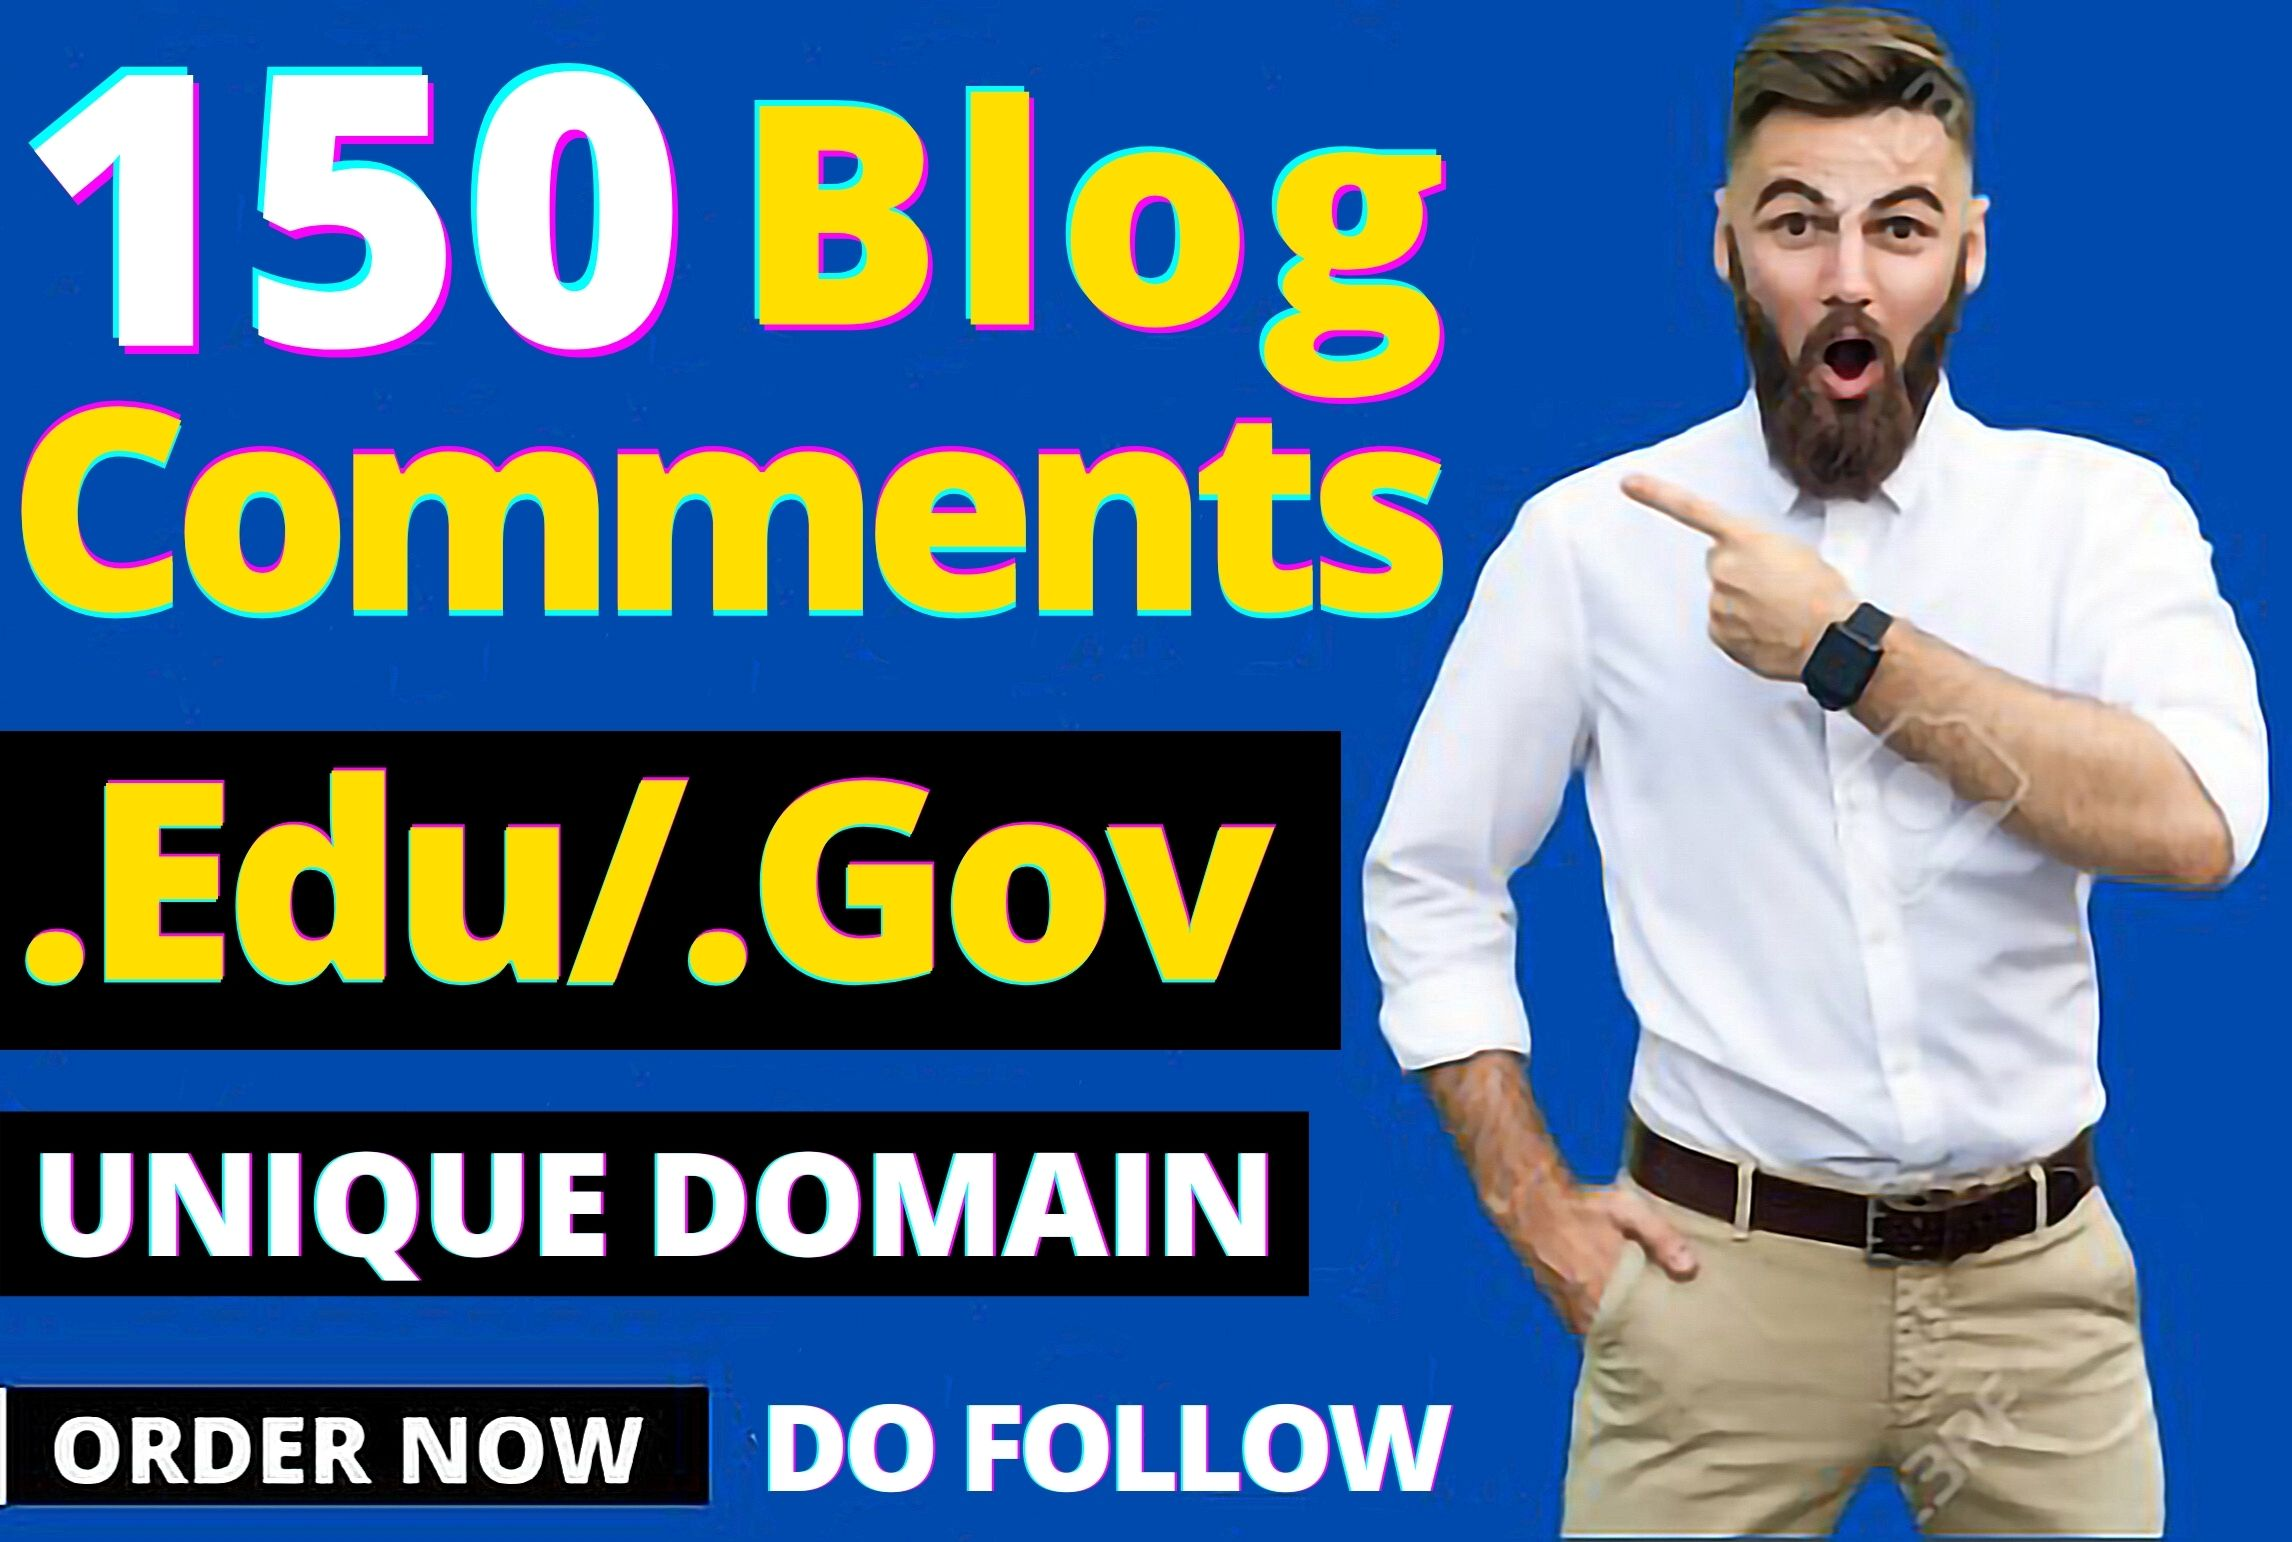 150 Pr9 EDU GOV Blog comments backlinks for SEO google ranking